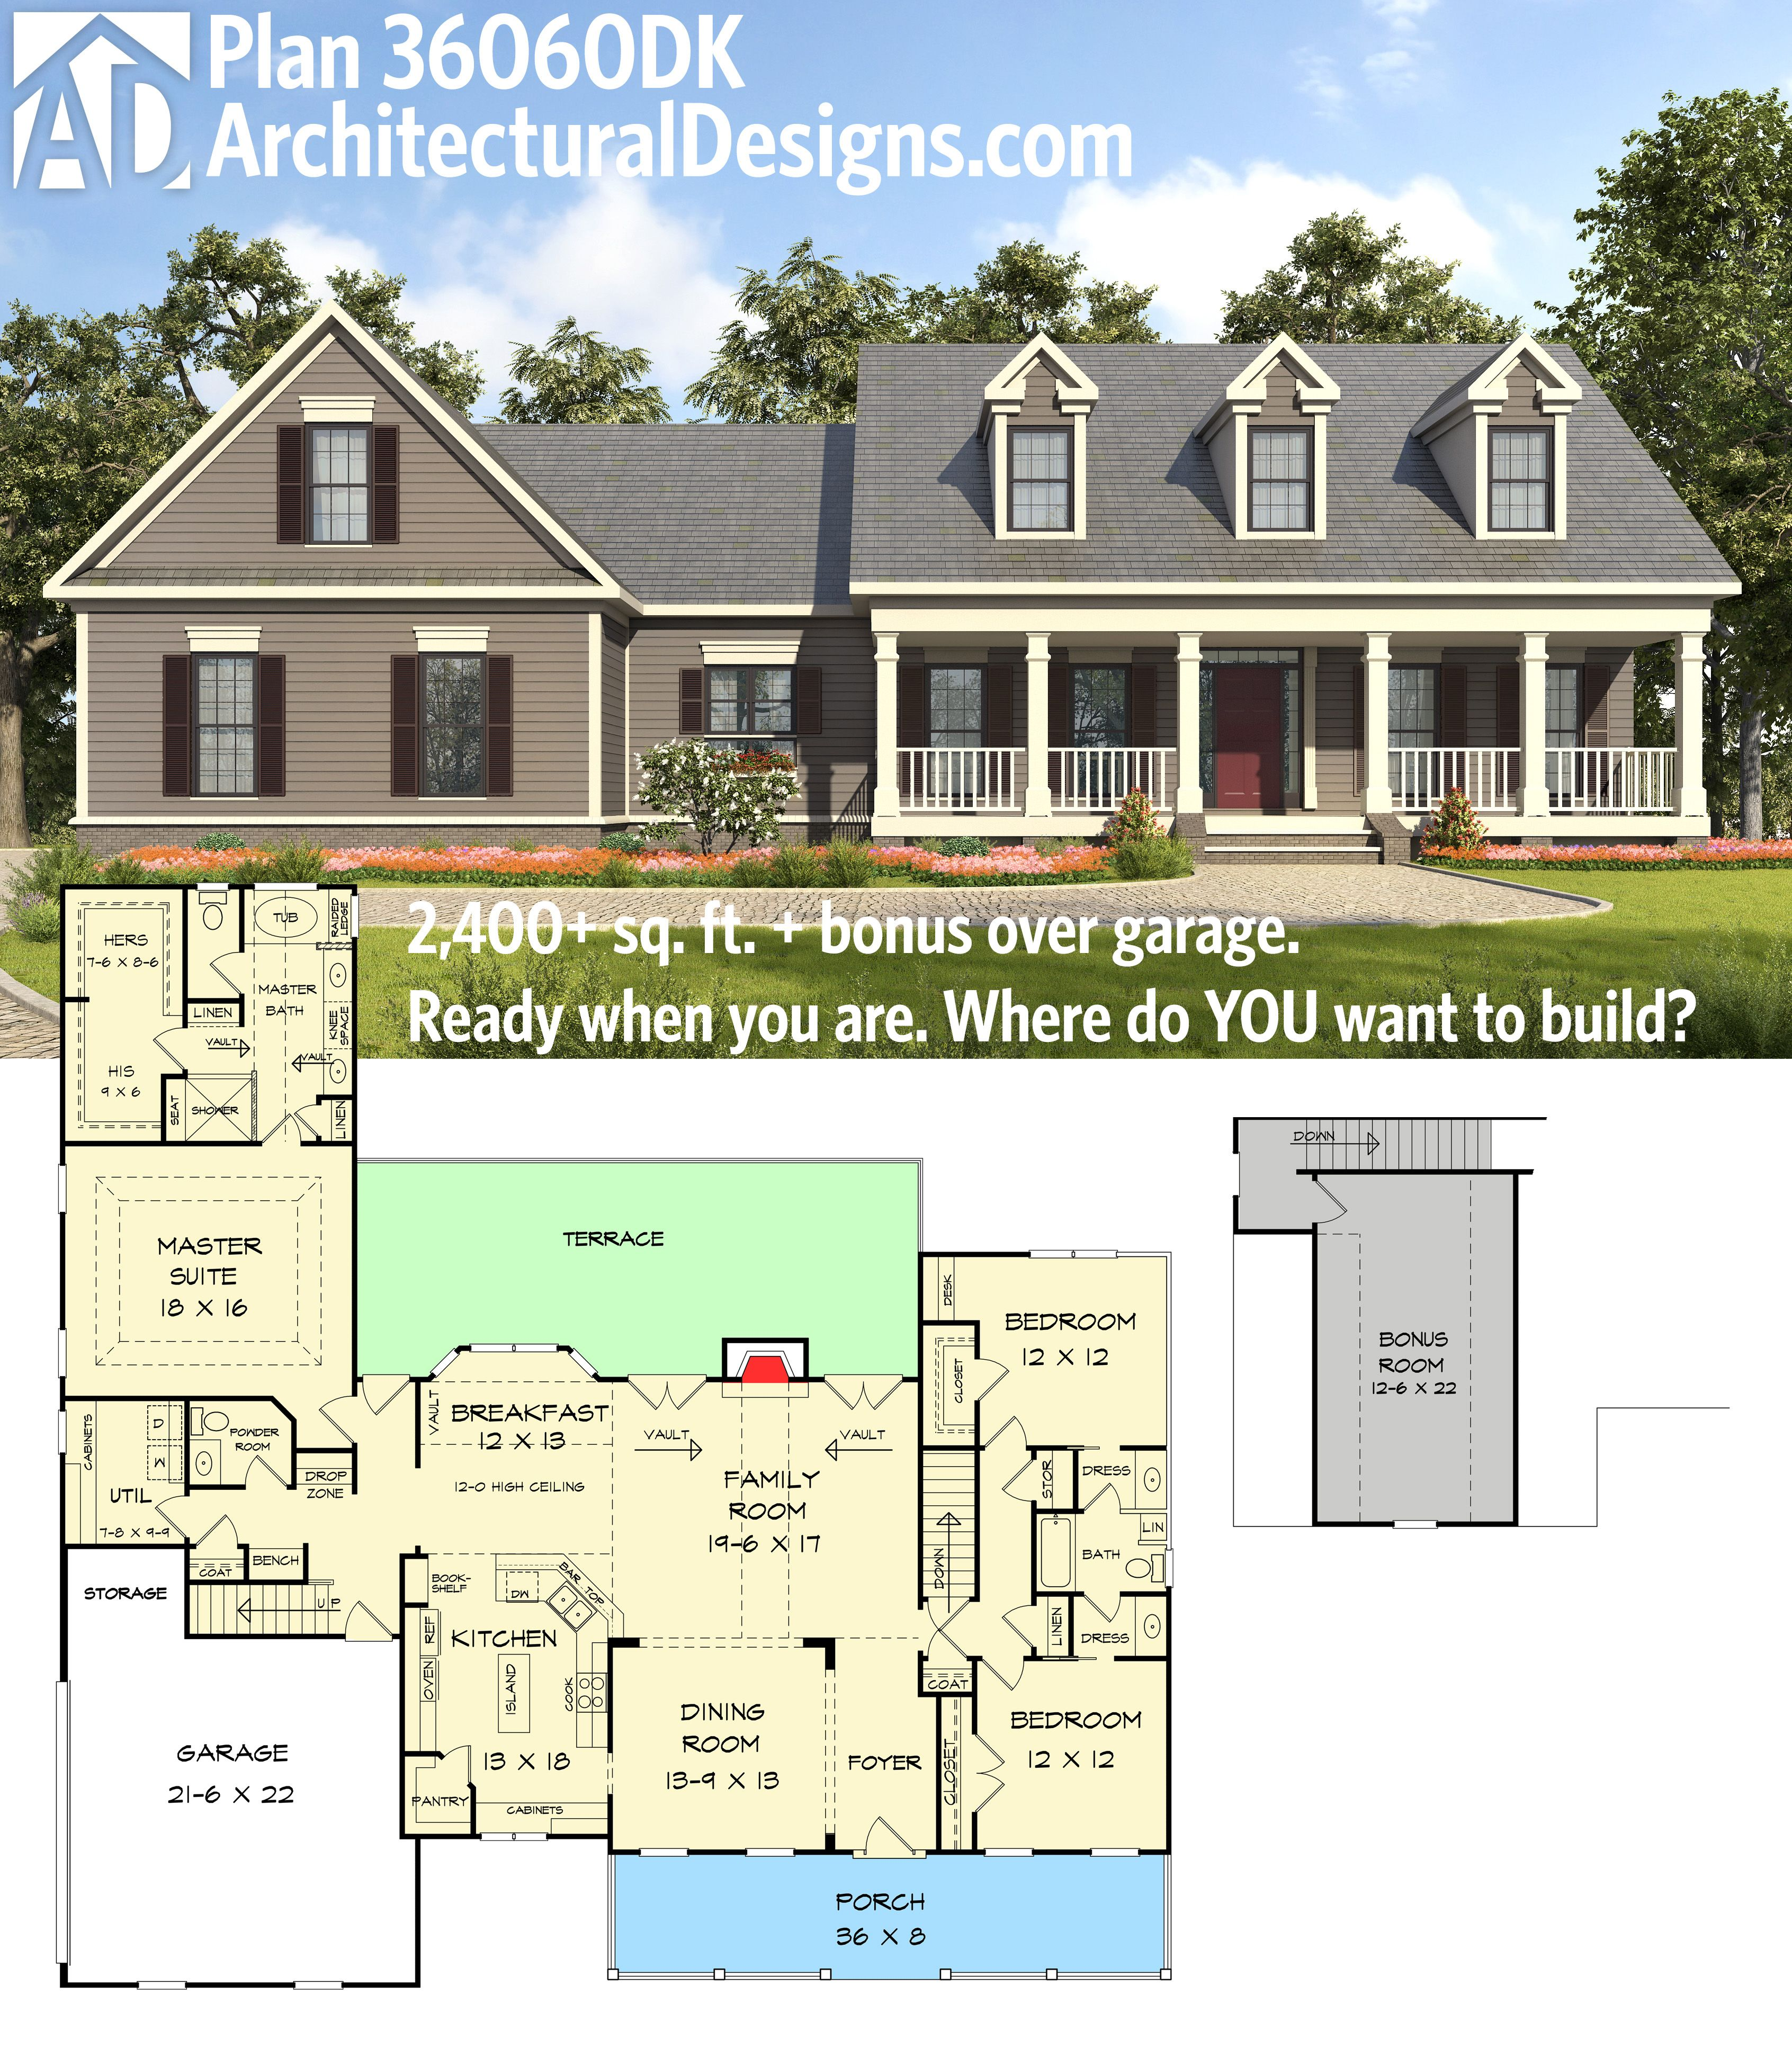 Architectural designs house plan 36060dk gives you 3 bed for House plans with bonus room over garage